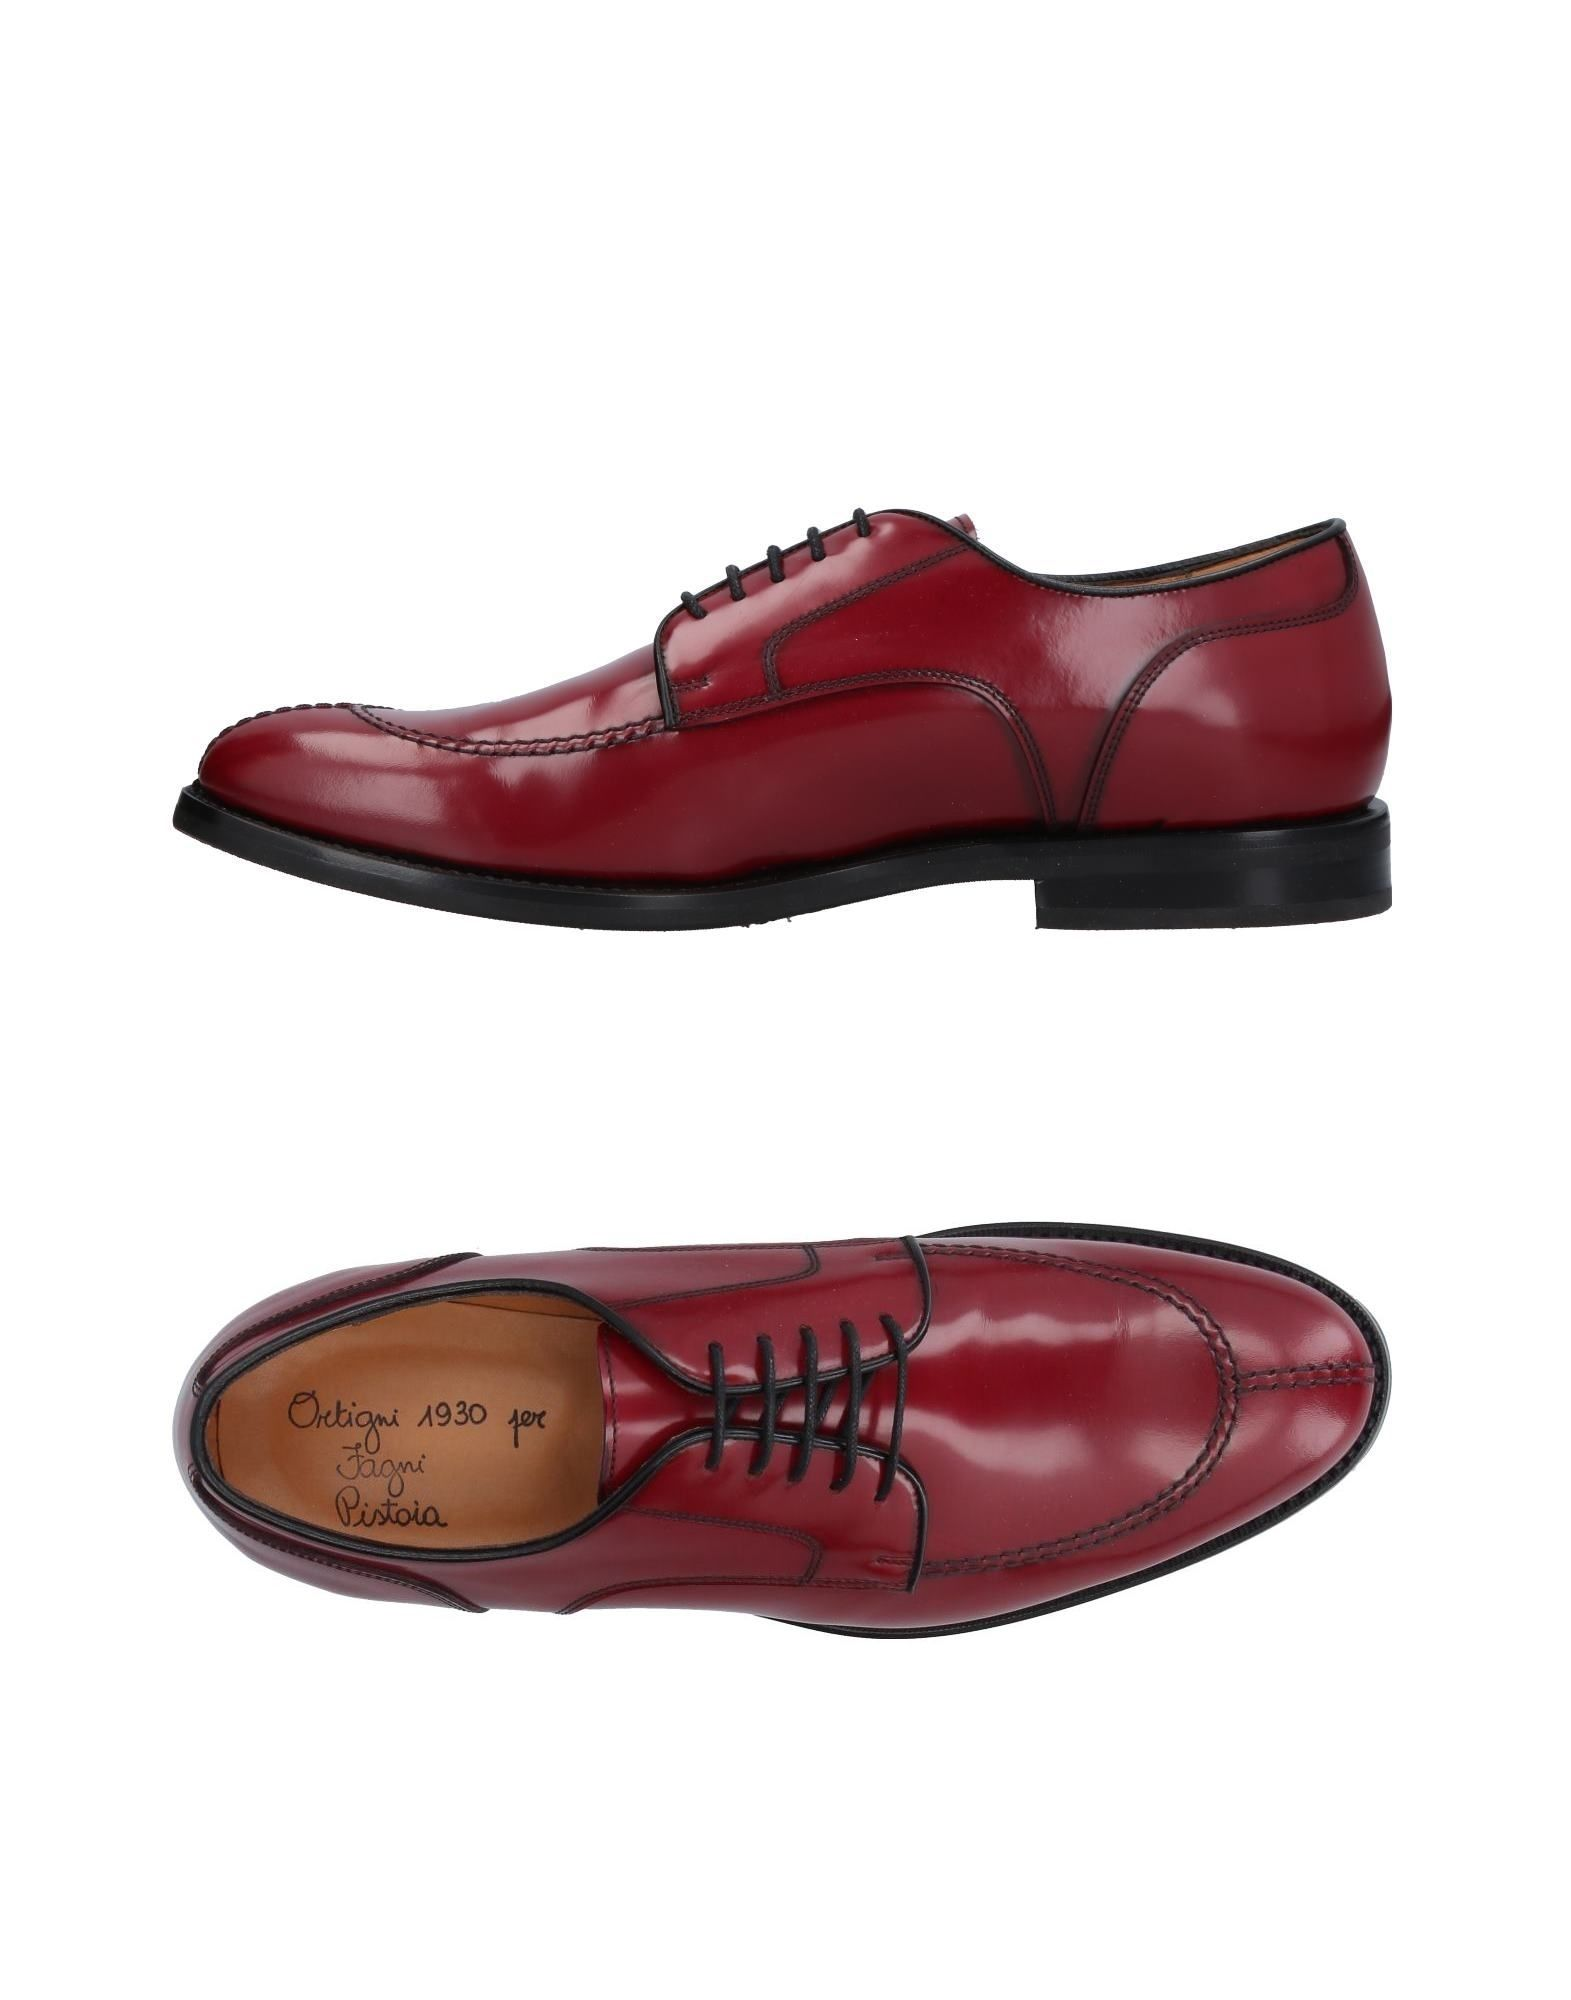 ORTIGNI Laced Shoes in Maroon